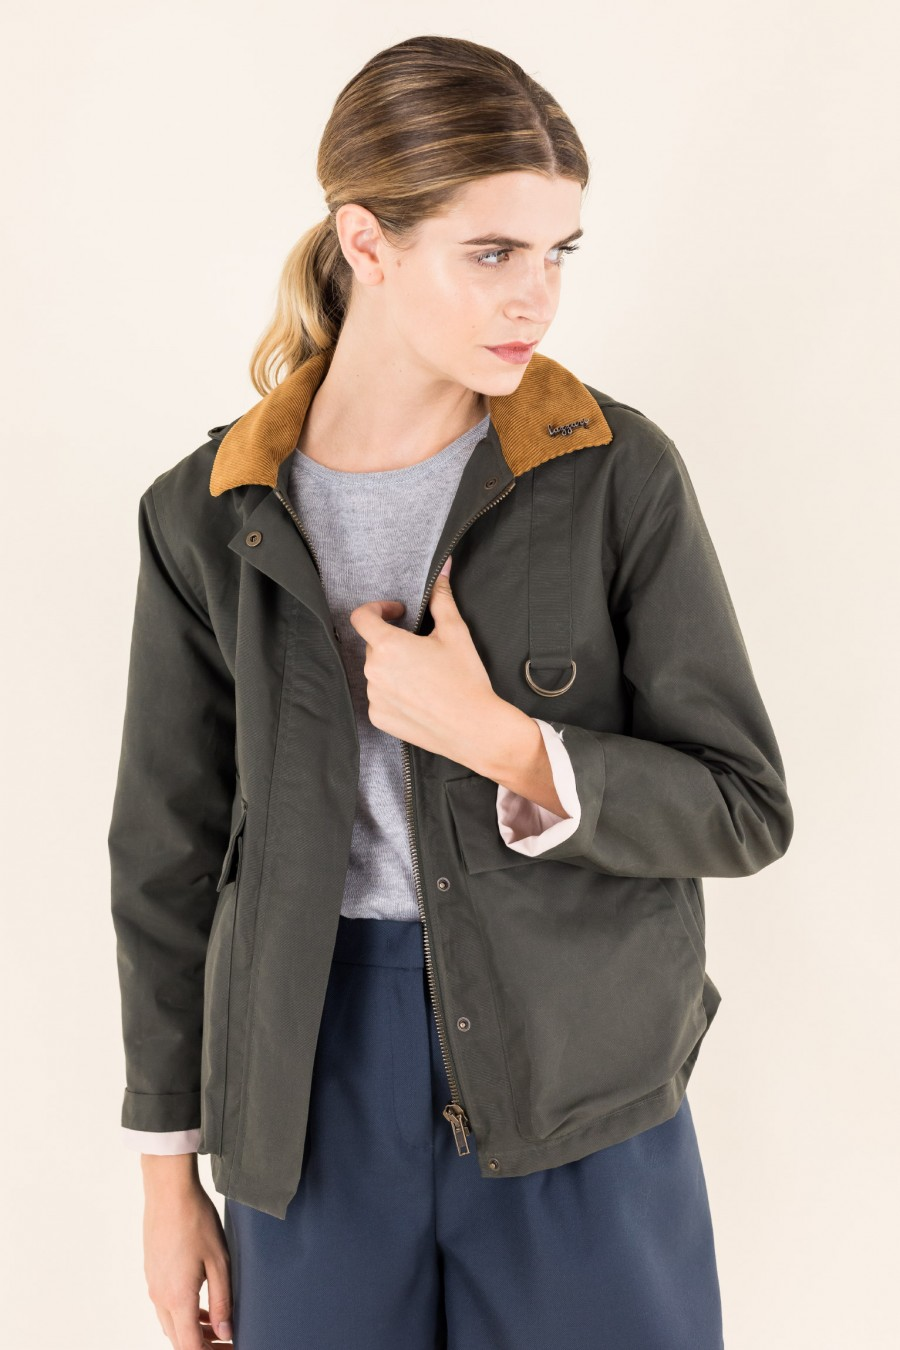 Green jacket with collar